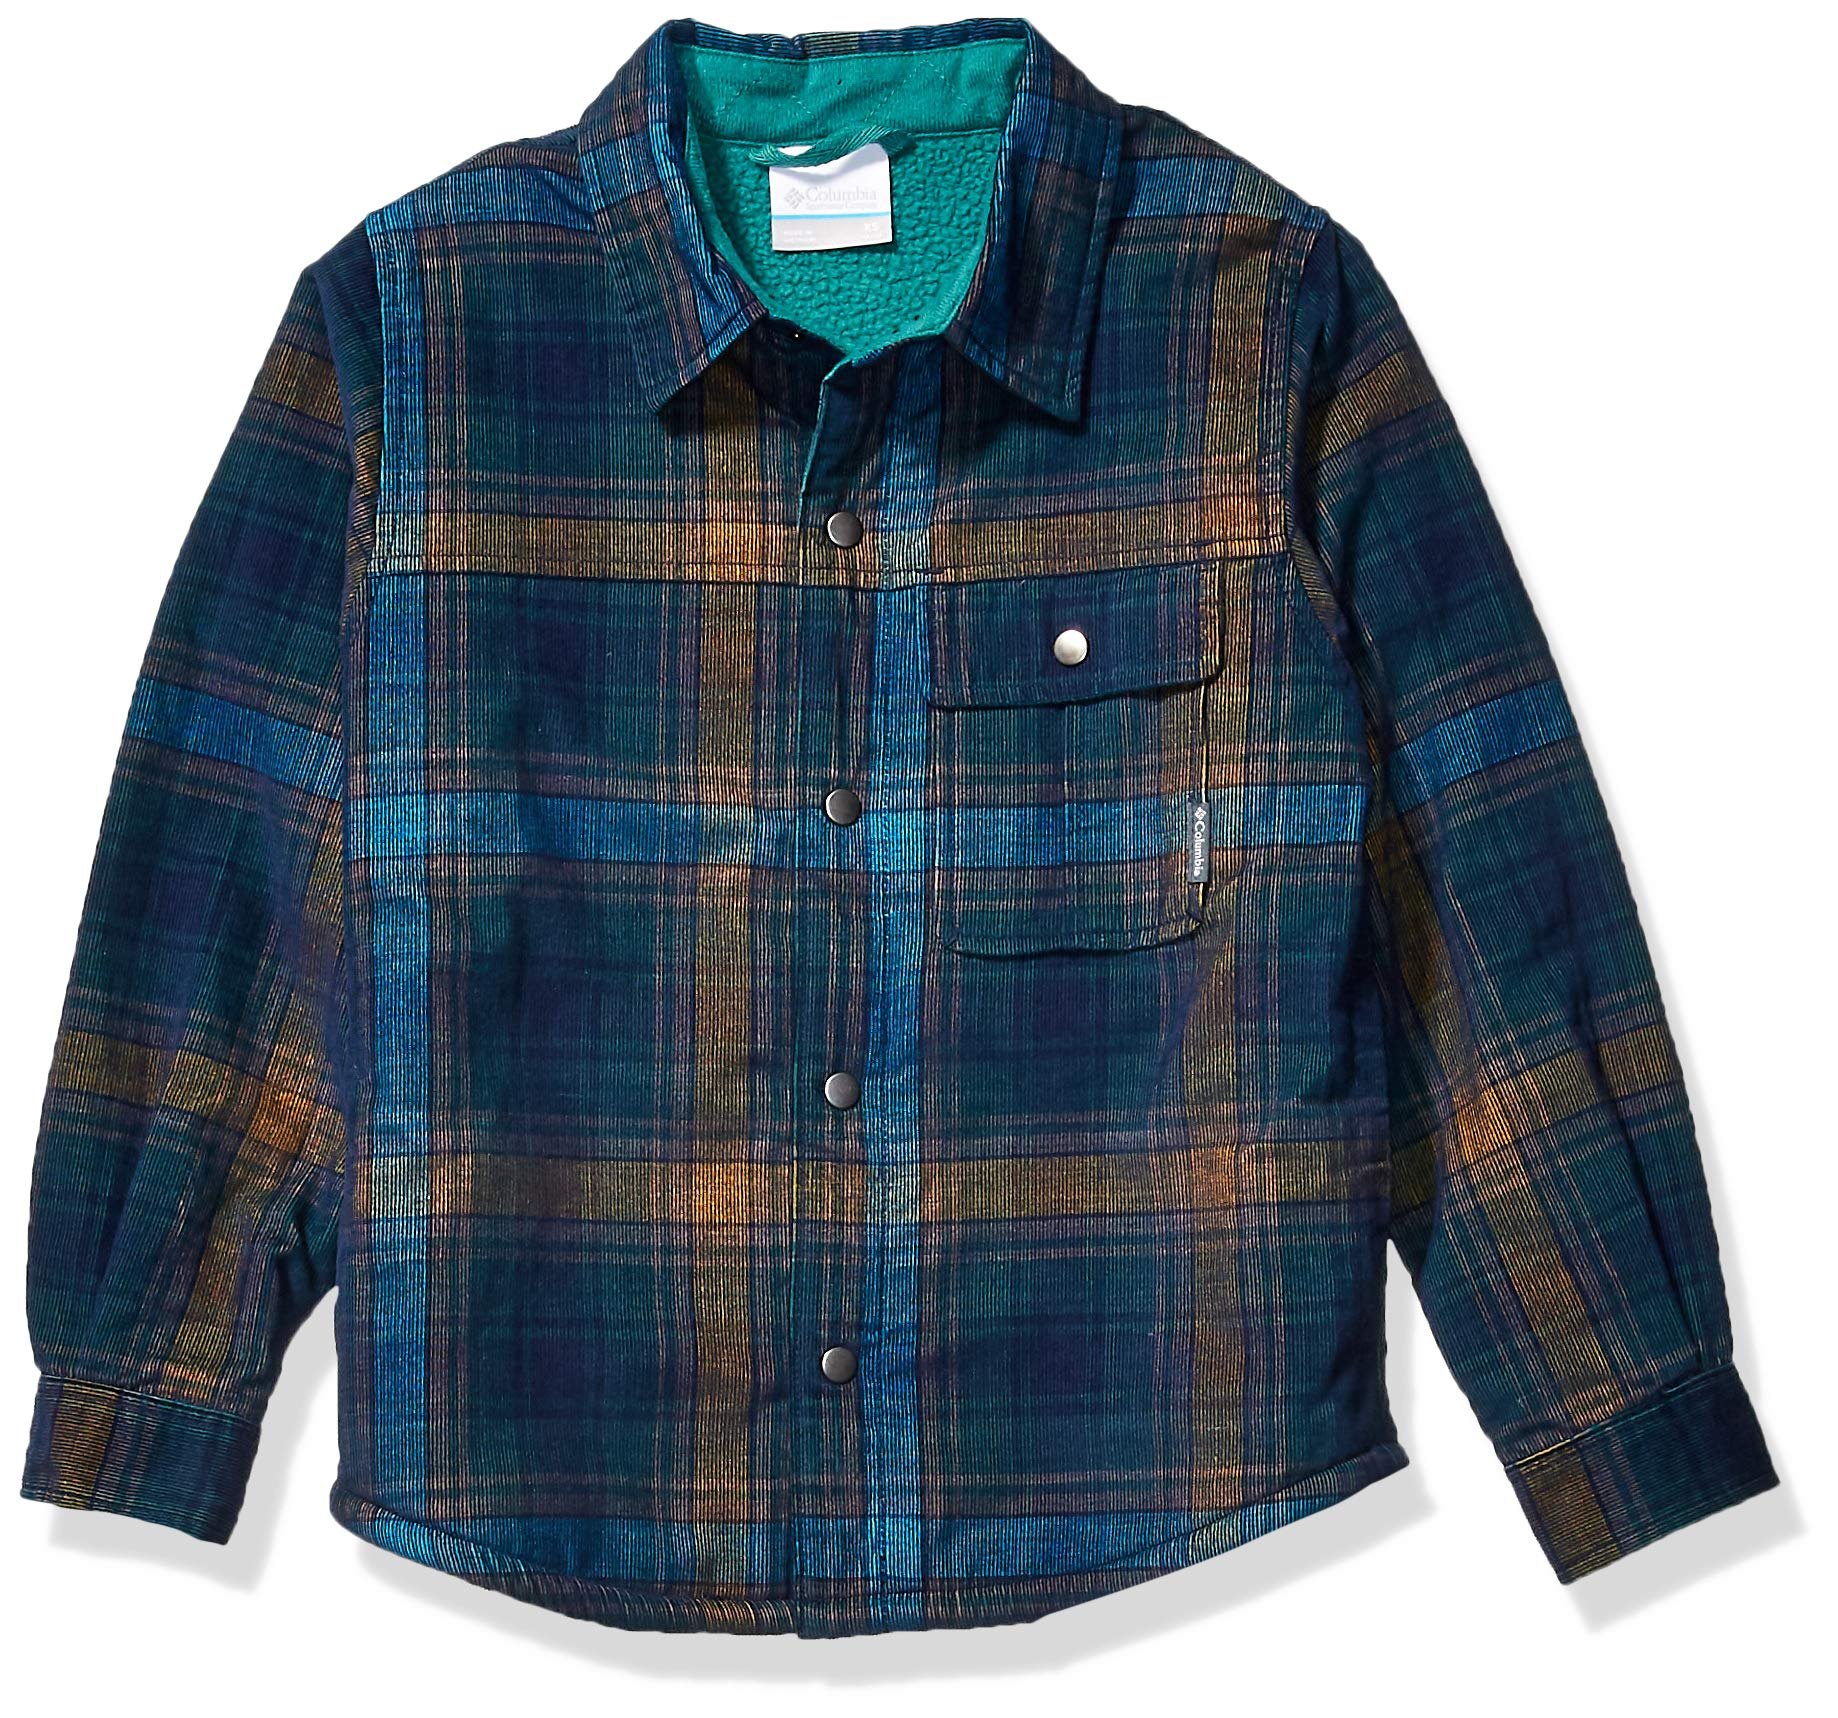 Columbia Boys' Big Windward Sherpa-Lined Shirt Jacket, Pine Green Plaid, X-Large by Columbia